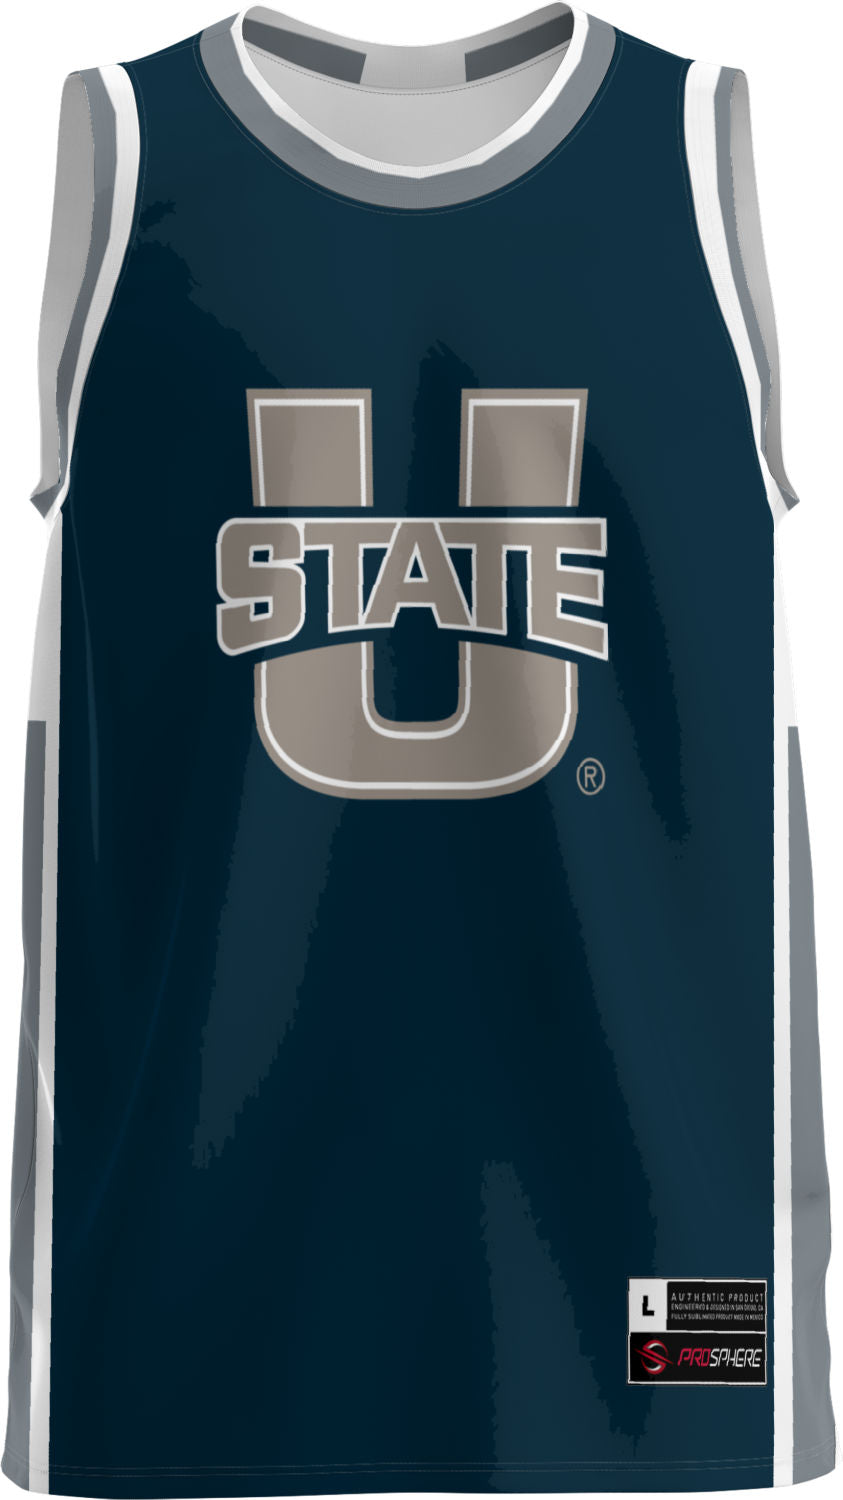 Utah State University Adult Replica Basketball Fan Jersey - Modern